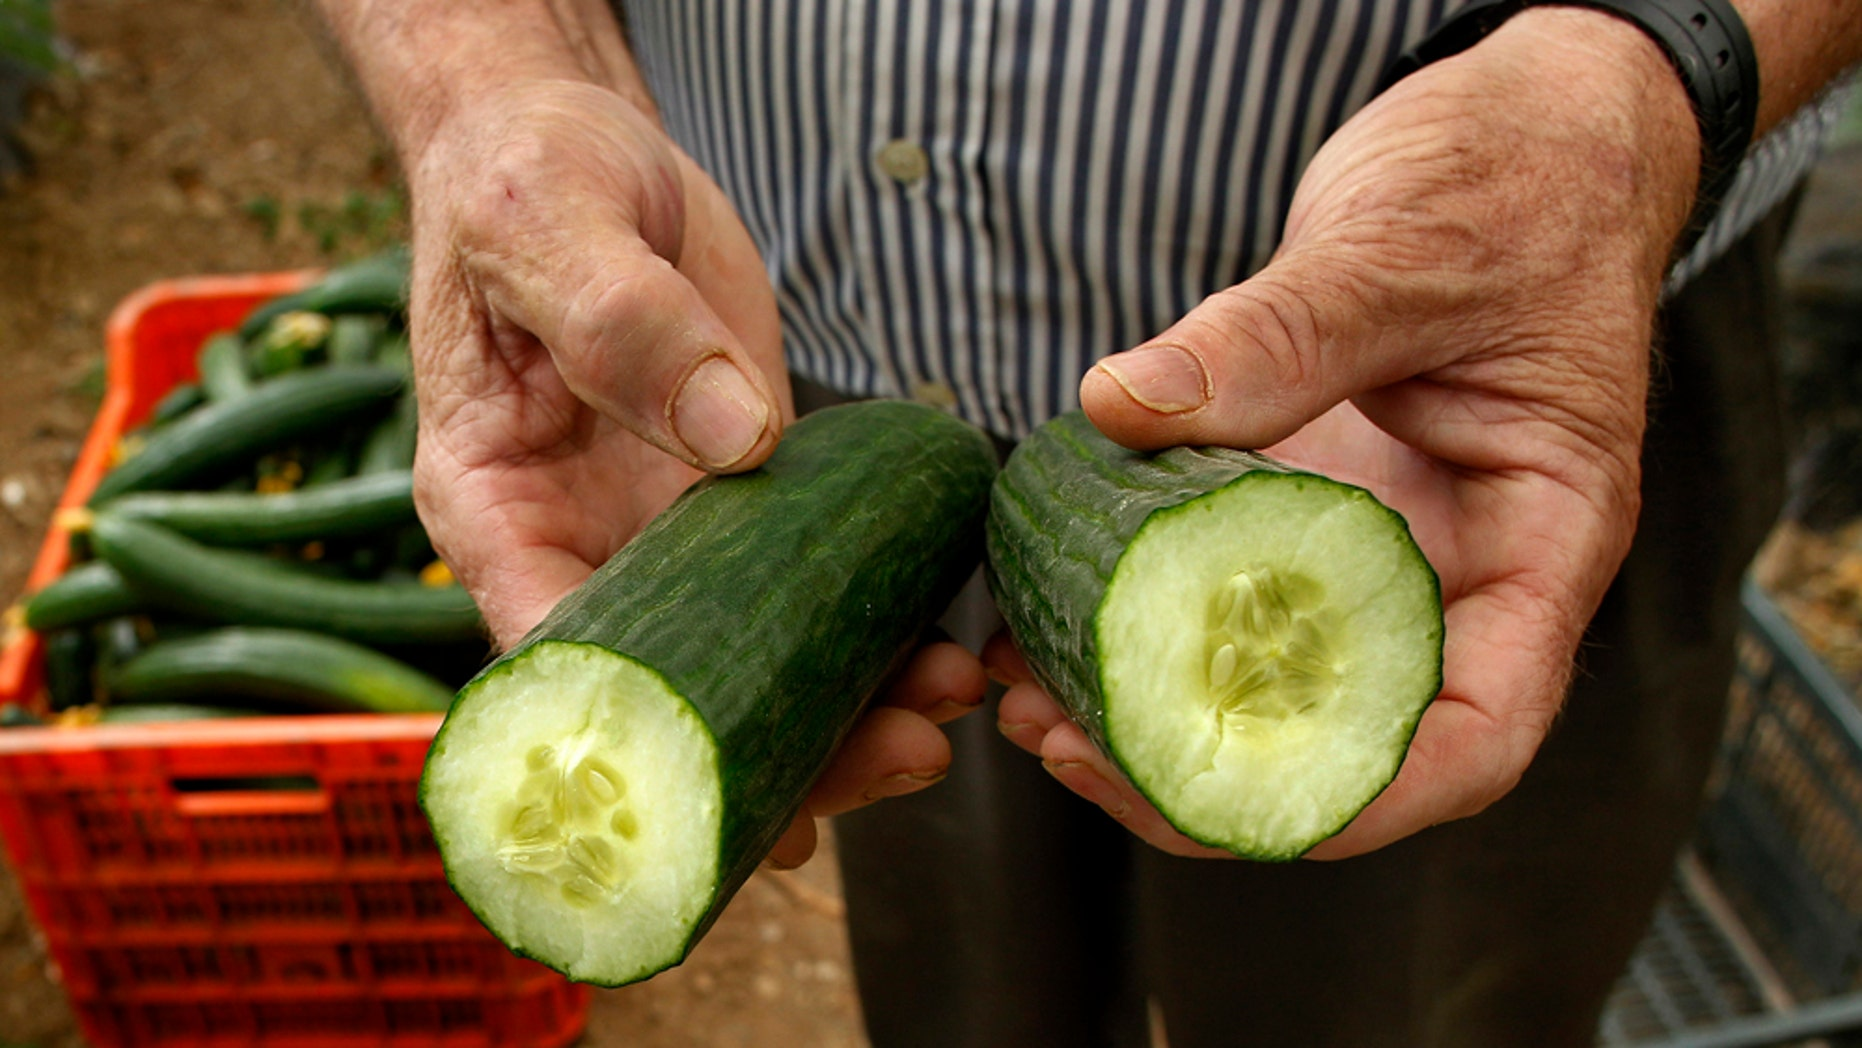 Contaminated cucumbers from Spain may have killed 16 people and sickened dozens of others in Europe in a mysterious bacterial outbreak linked to E. coli.